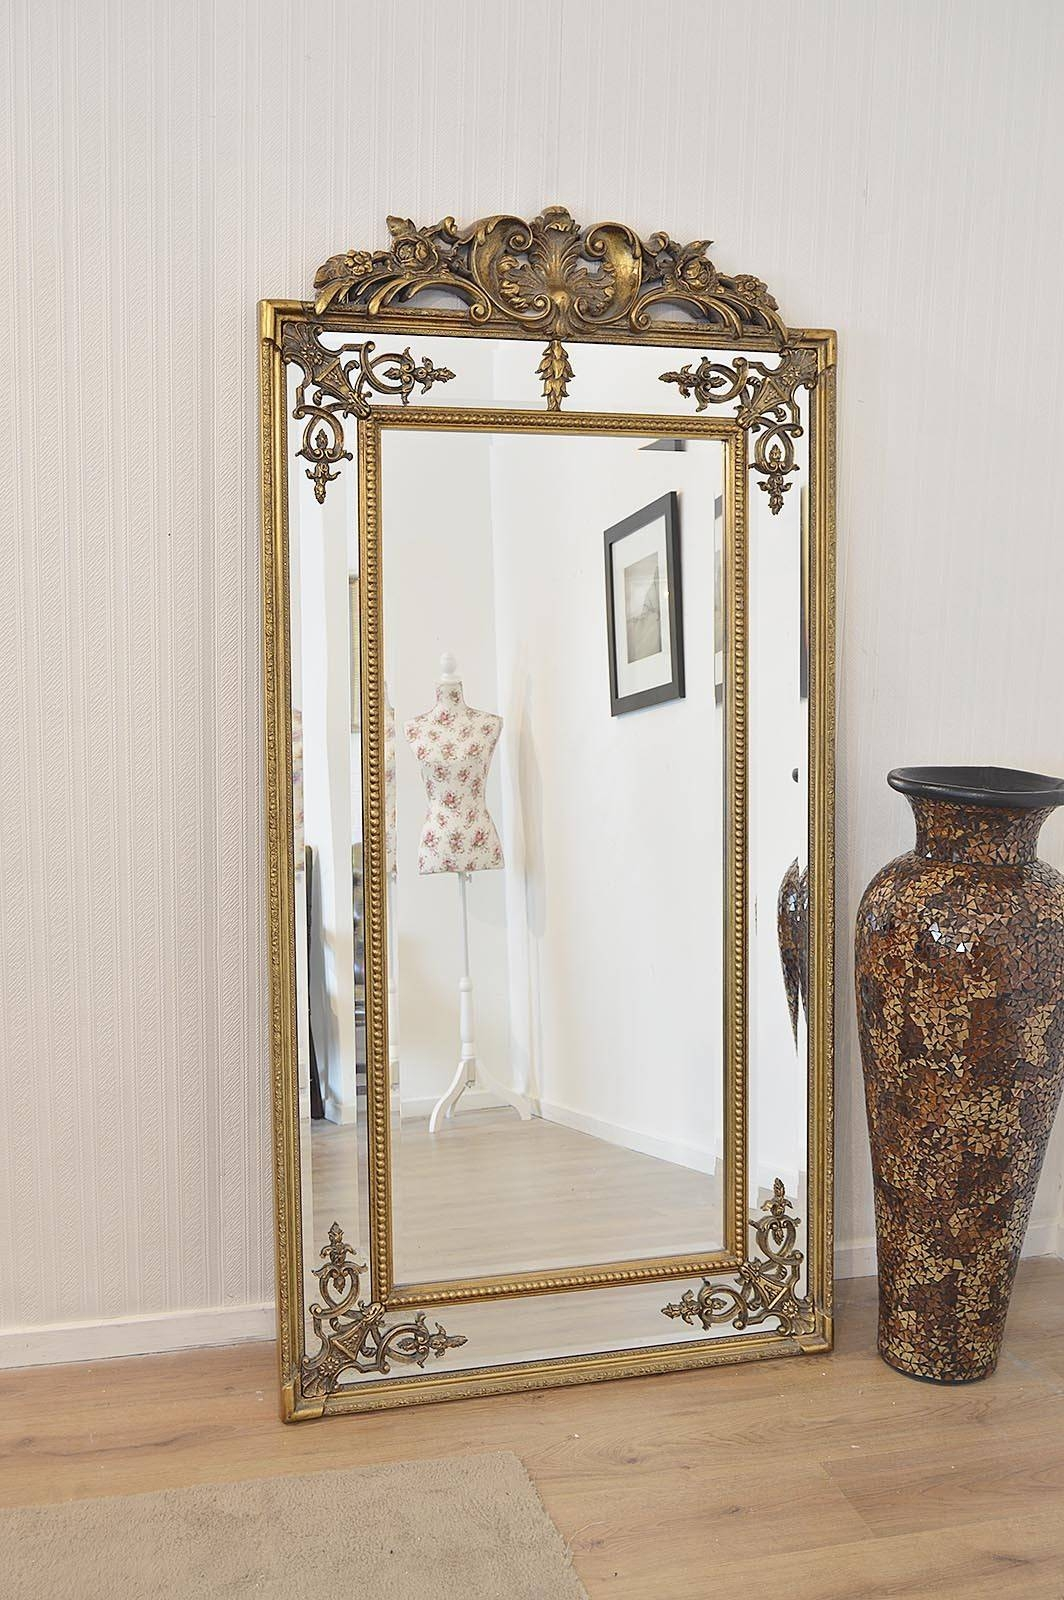 Popular Photo of Large Gold Ornate Mirrors